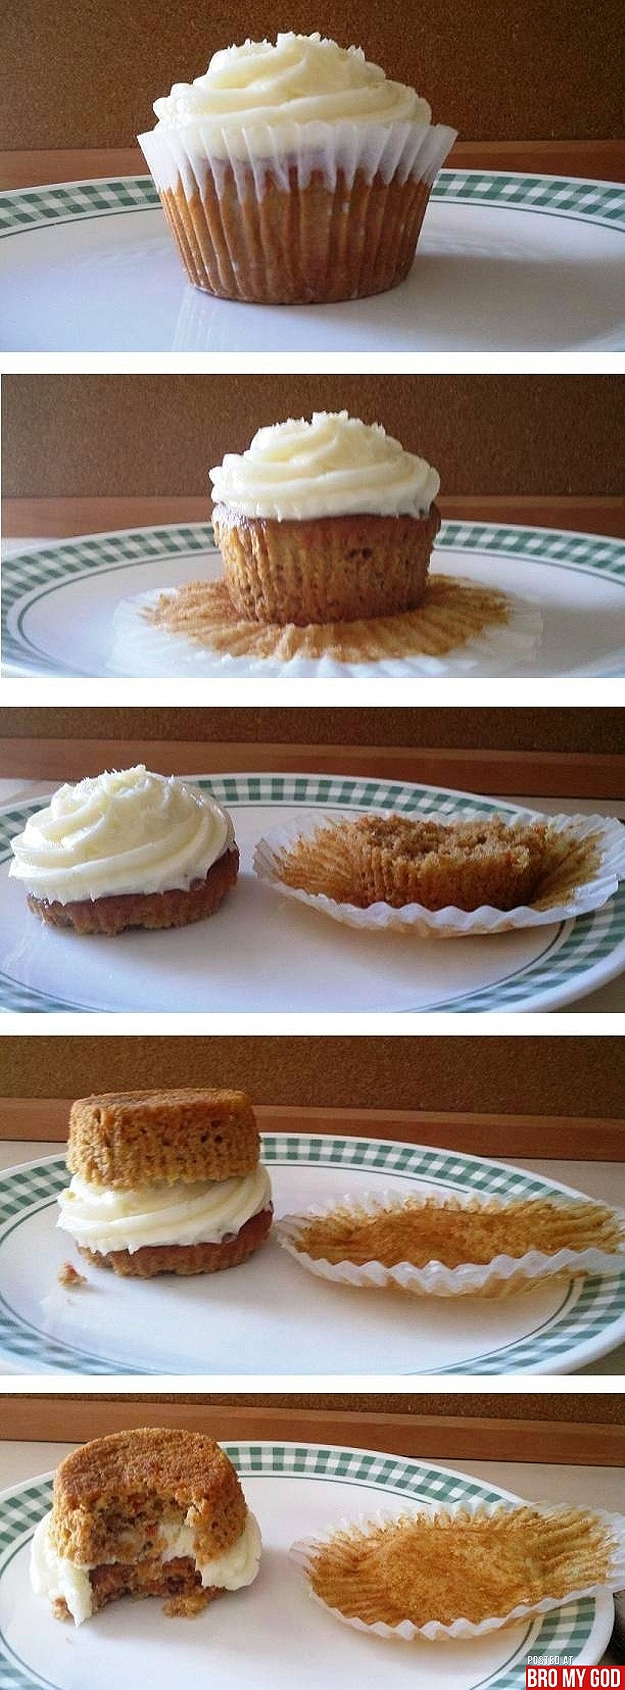 how-to-eat-a-cupcake